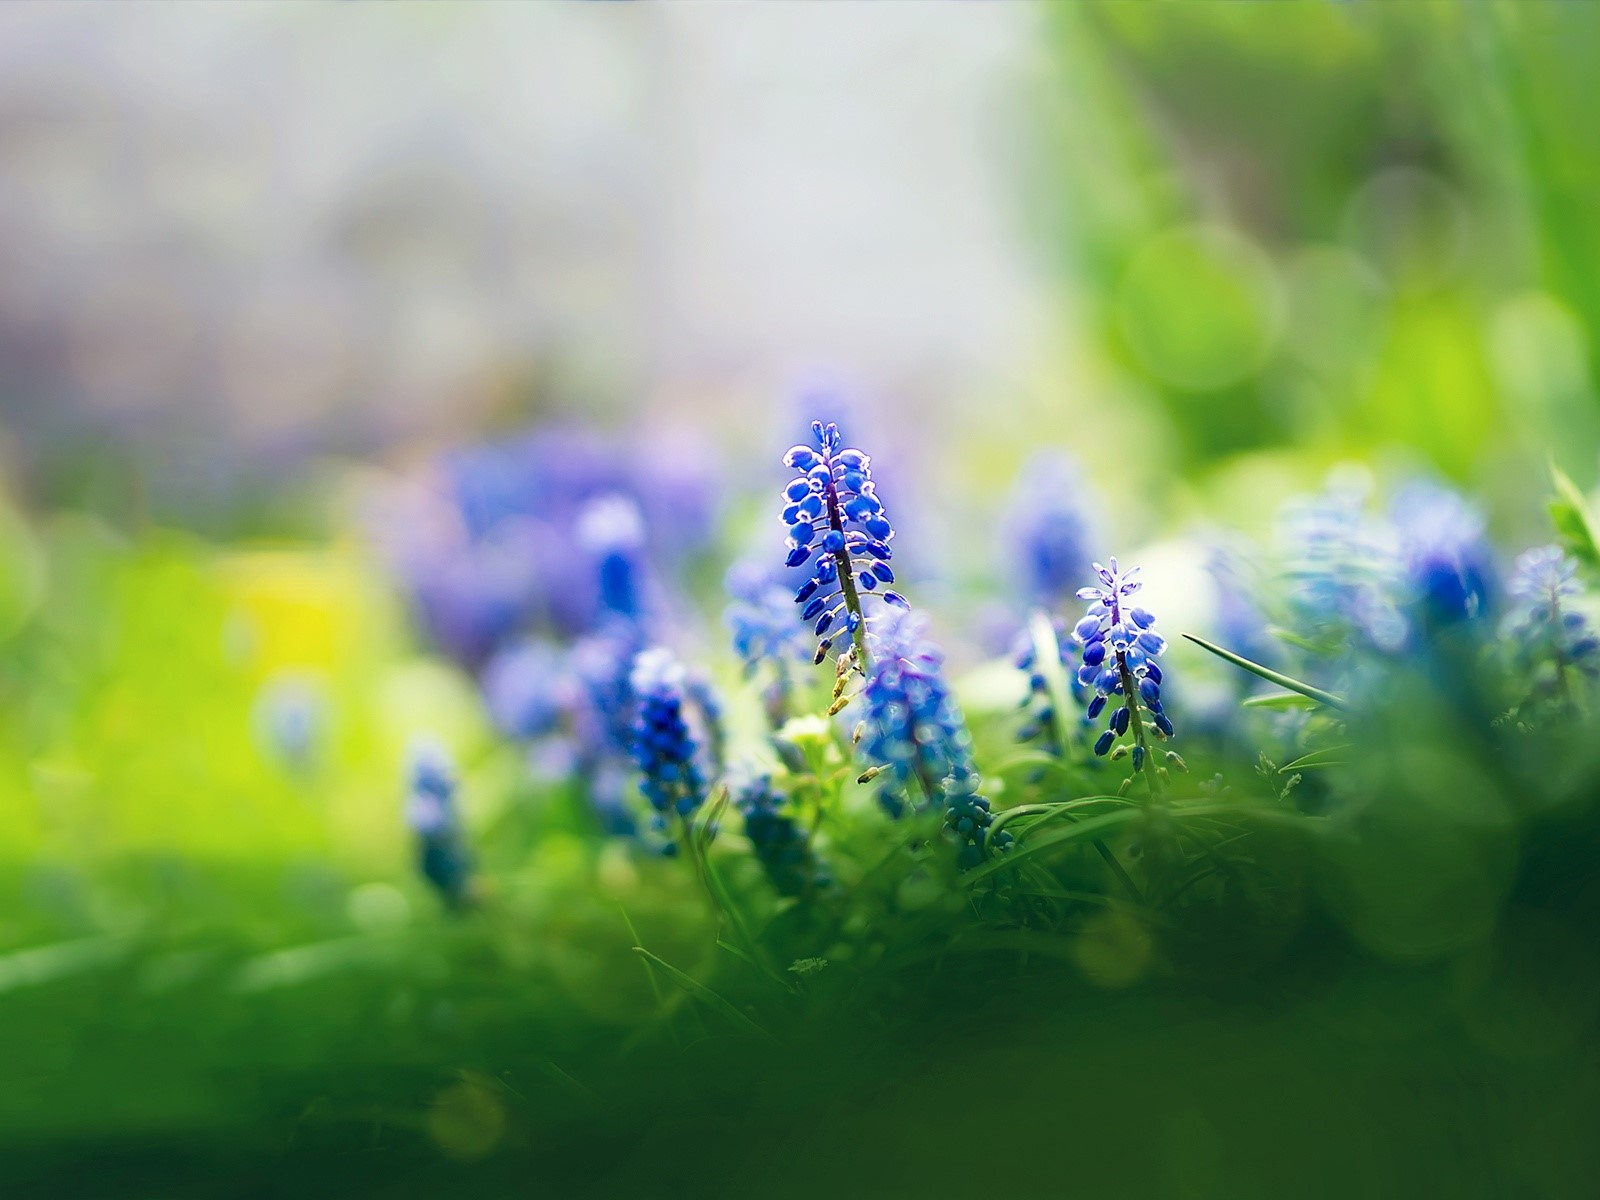 Wallpaper Muscari flowers